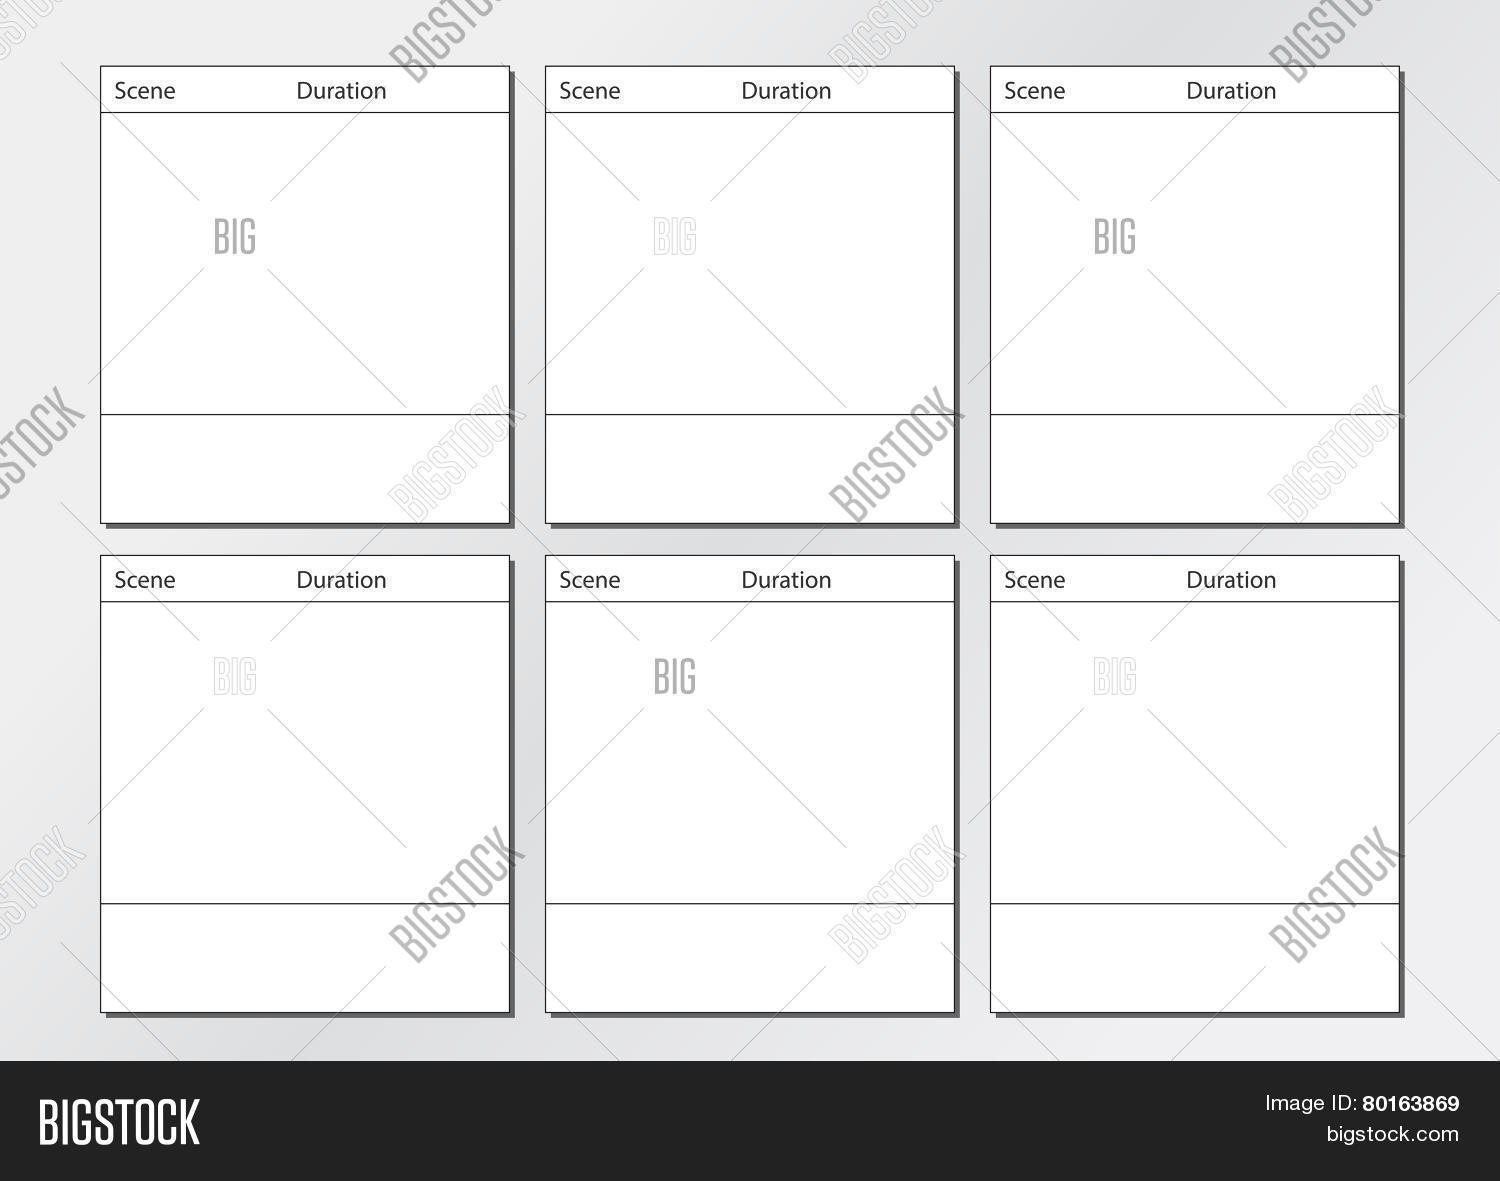 Tv commercial storyboard template vector photo bigstock tv commercial storyboard template 6 frames saigontimesfo